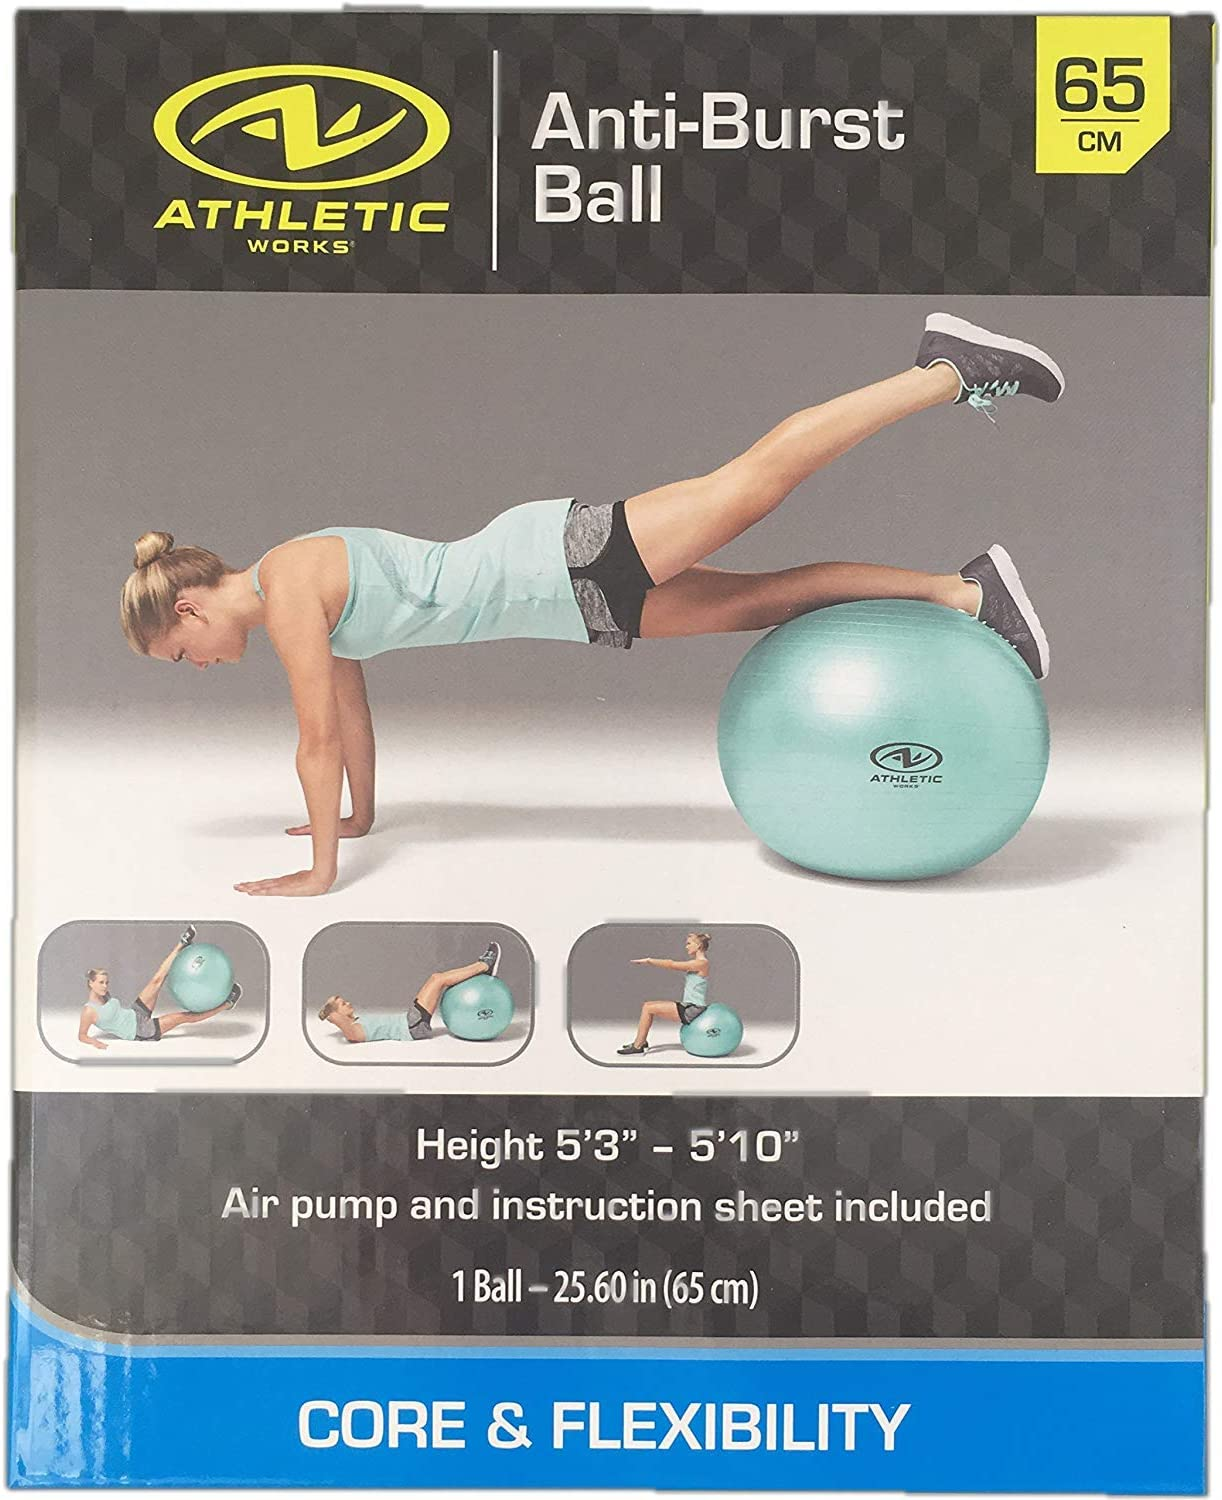 Exercise Fitness Work Out Ball 65 cm with Pump Anti Burst Mint Green